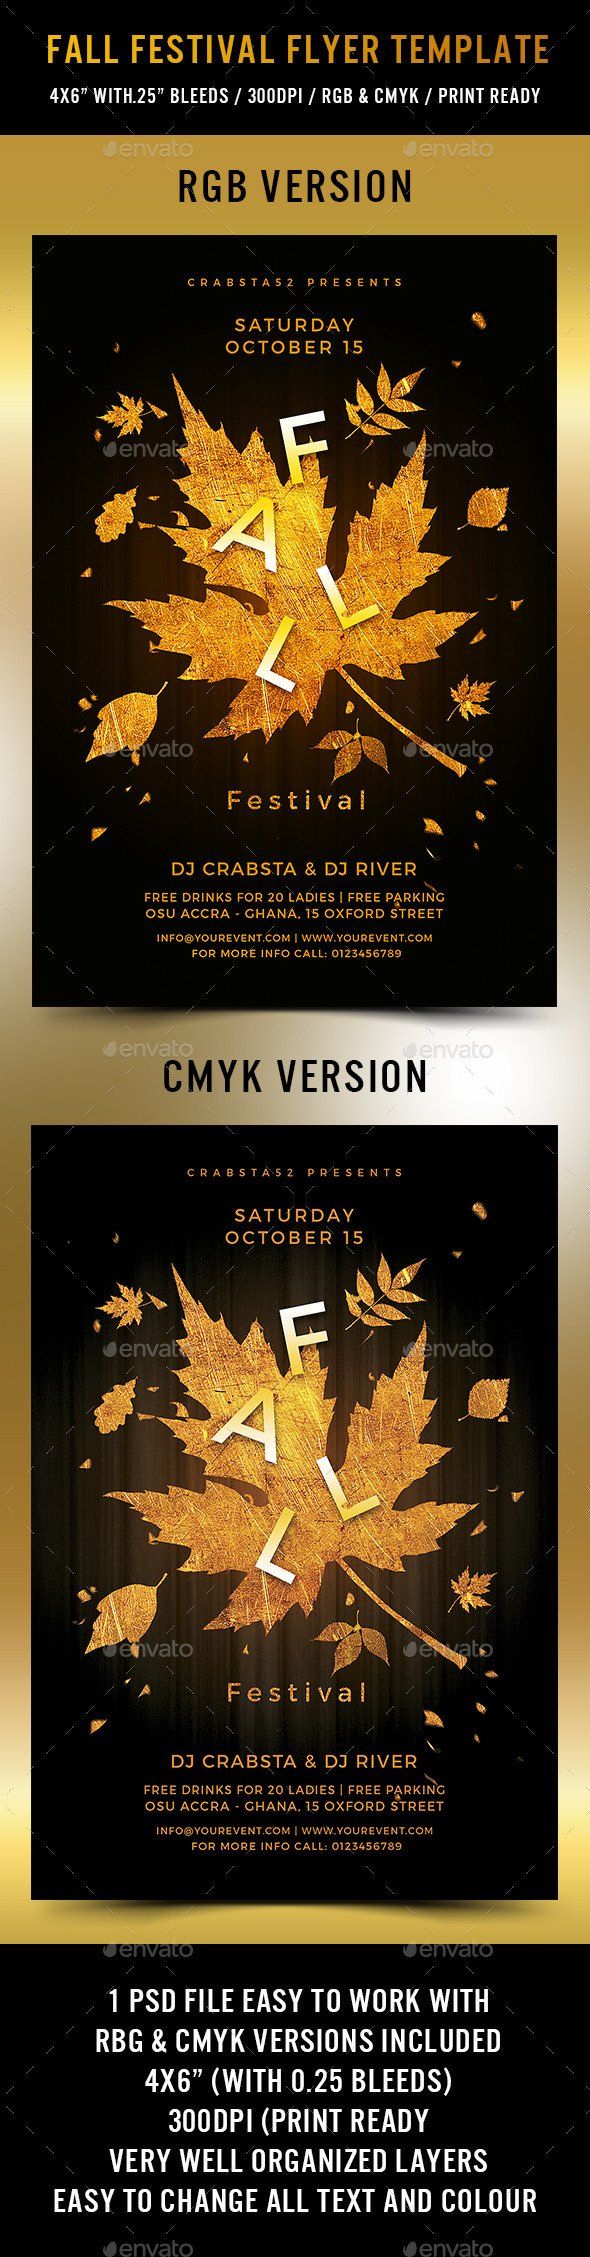 Fall Festival Flyer Template Fall Festival Flyer Template by Crabsta52